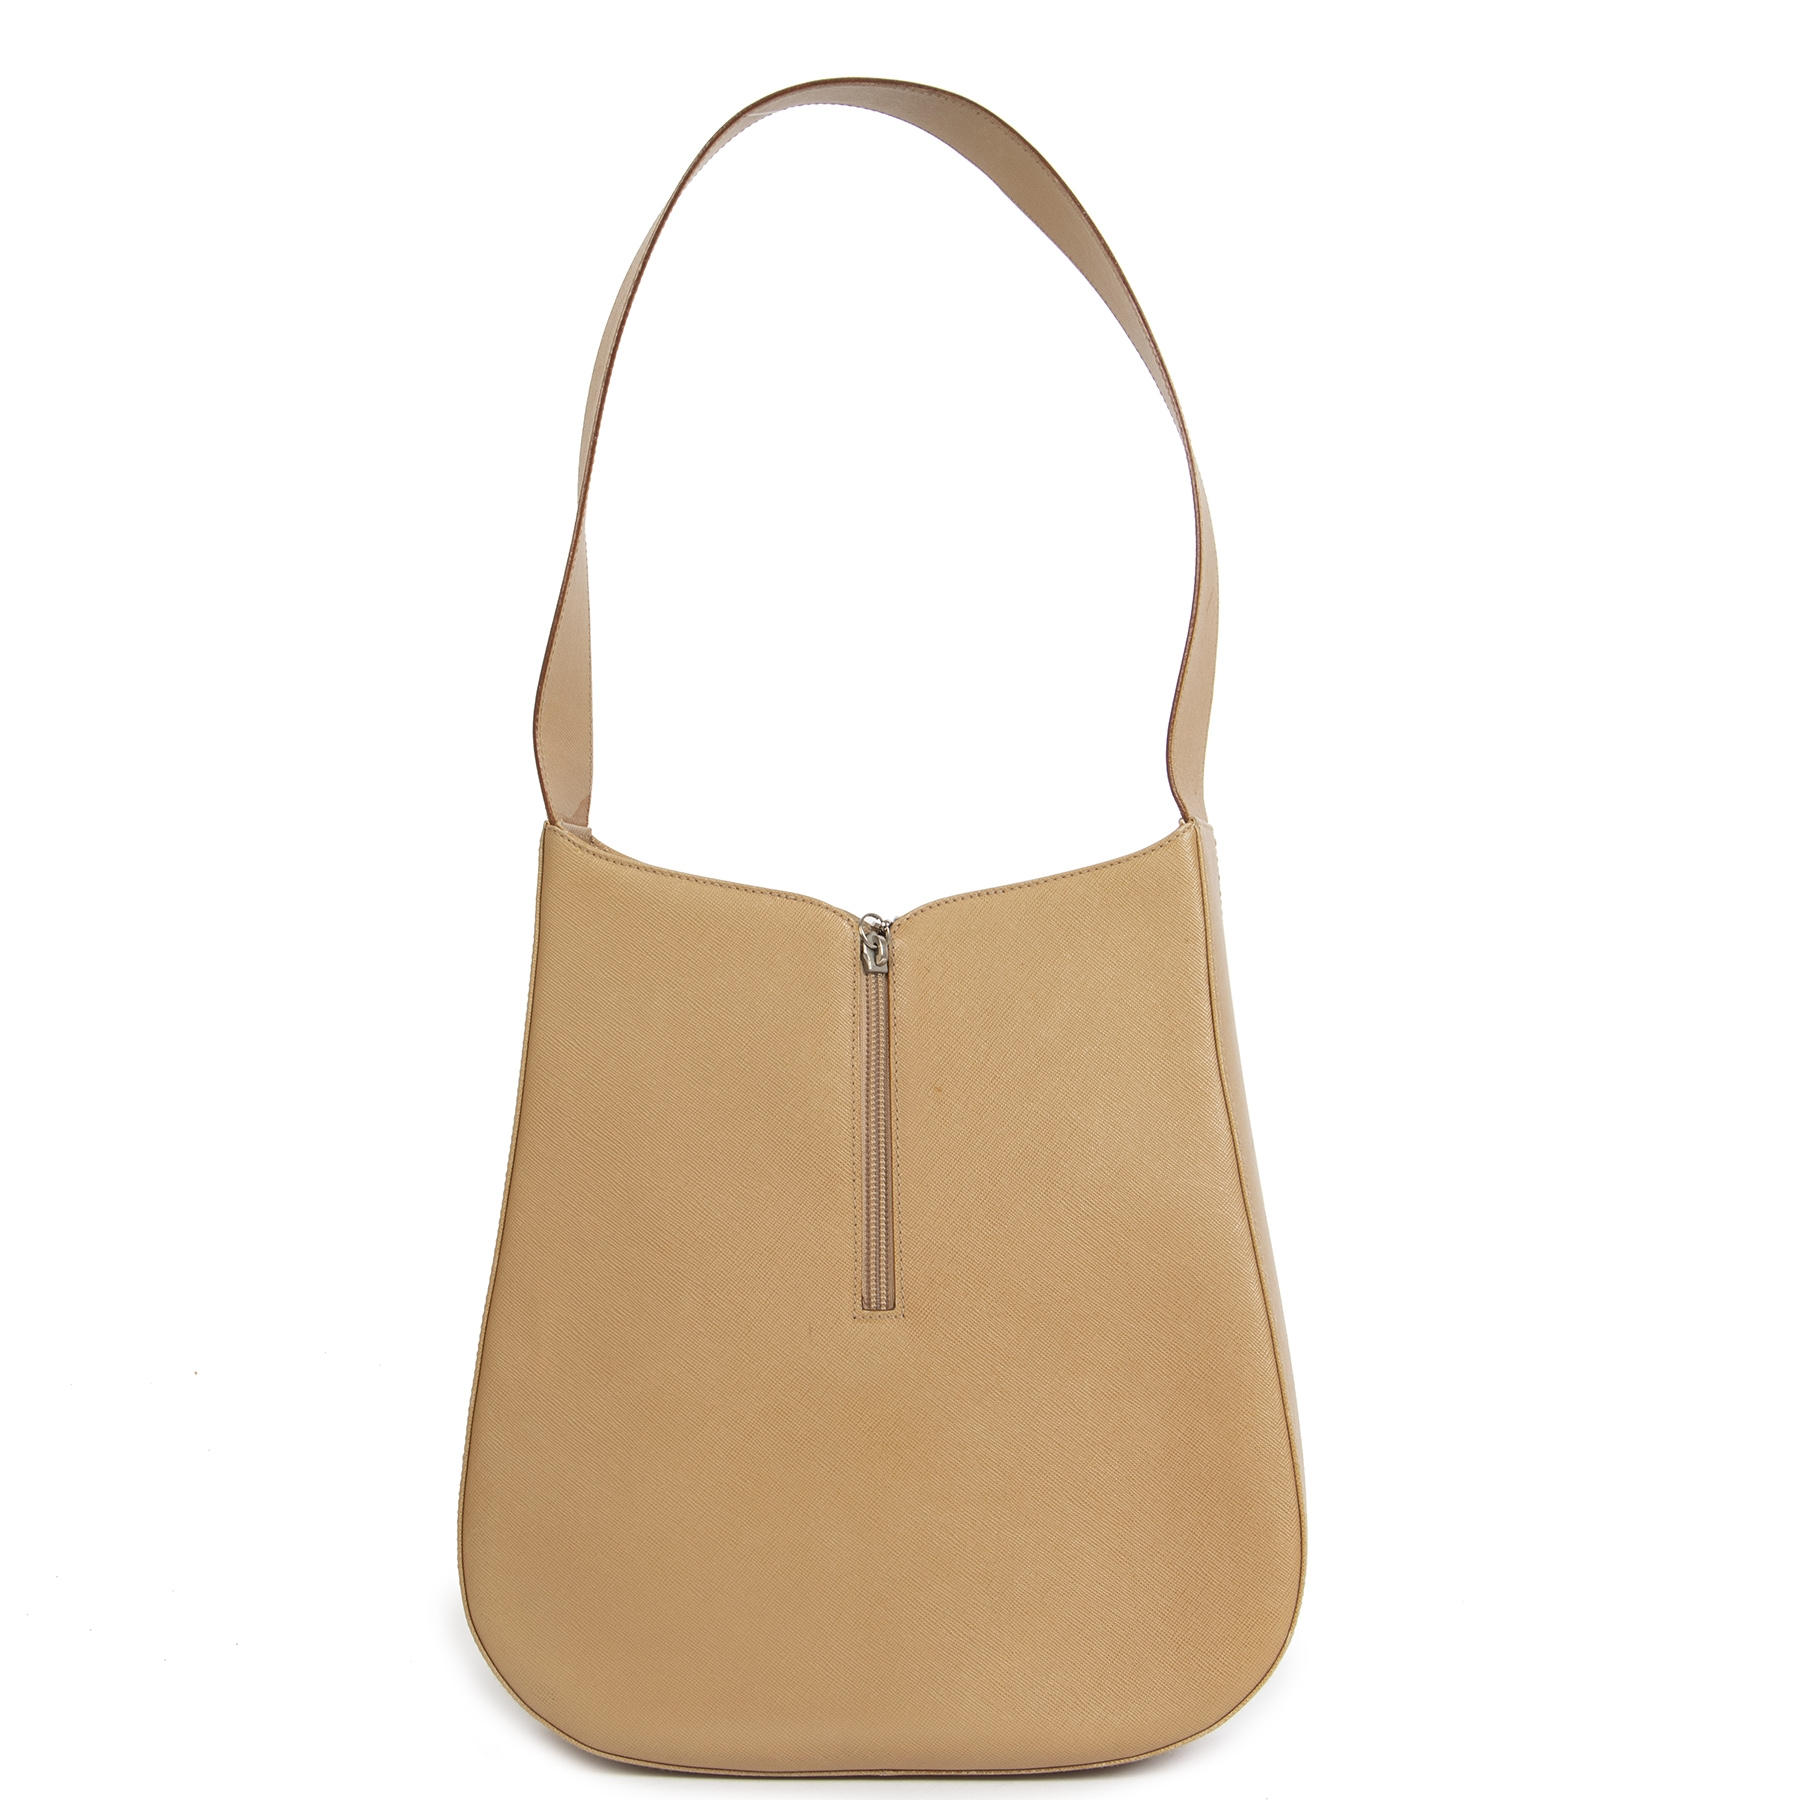 Authentic second hand Salvatore Ferragamo shoulder bag beige leather right price safe online shopping LabelLOV luxury webshop shopping Antwerp Belgium Fashion